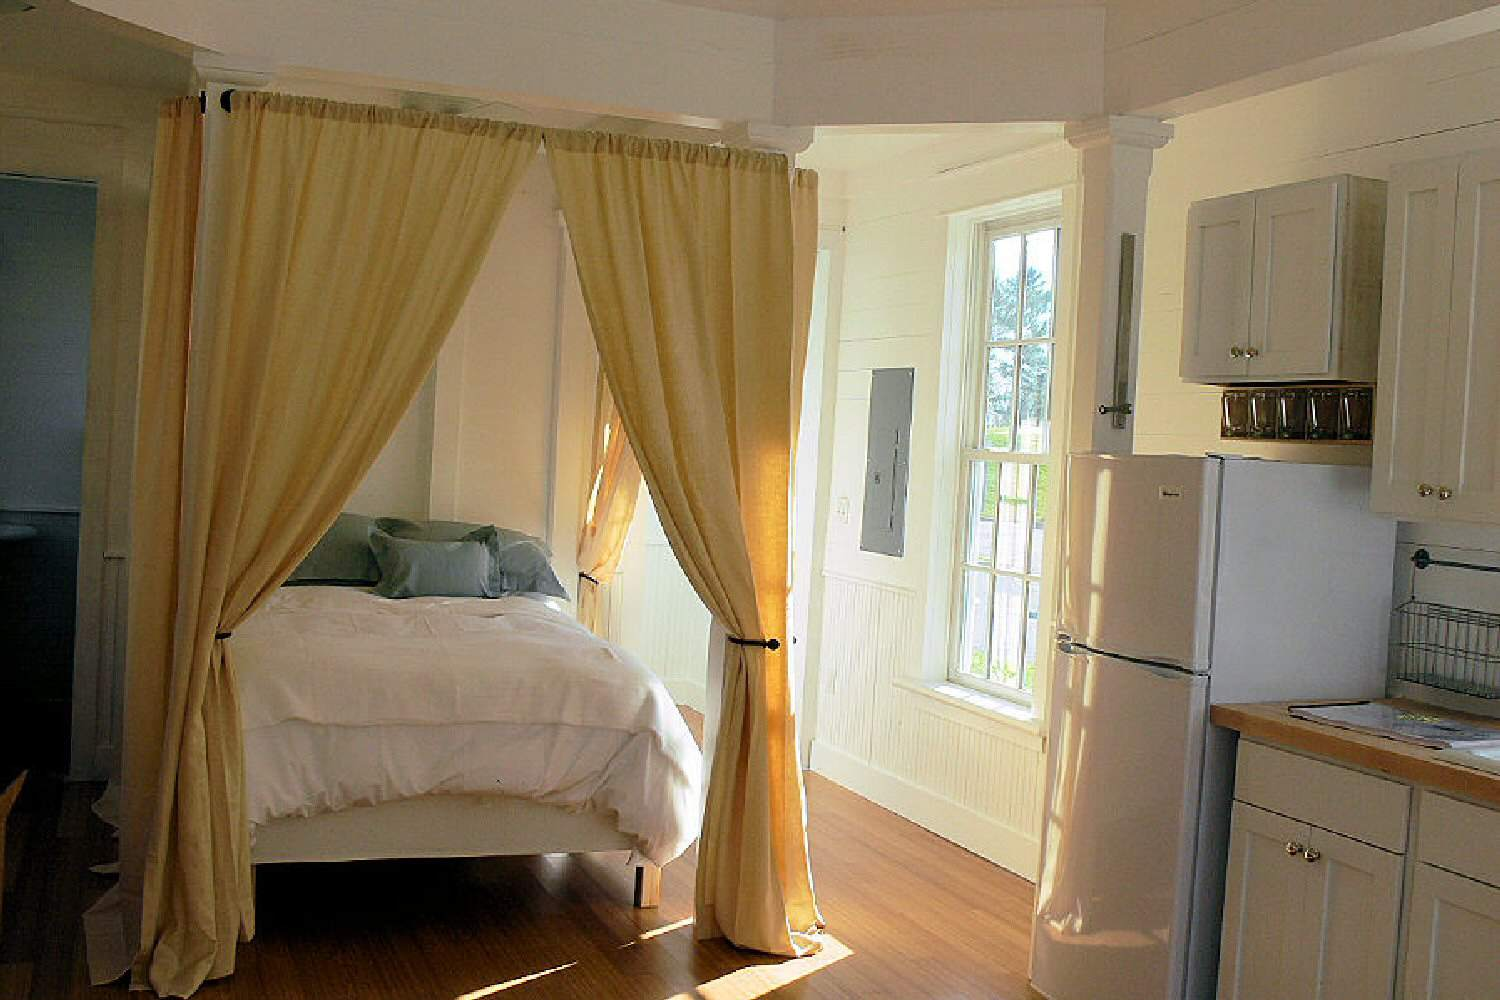 bed with surrounding curtains near a large window on the same wall as the built-in kitchen